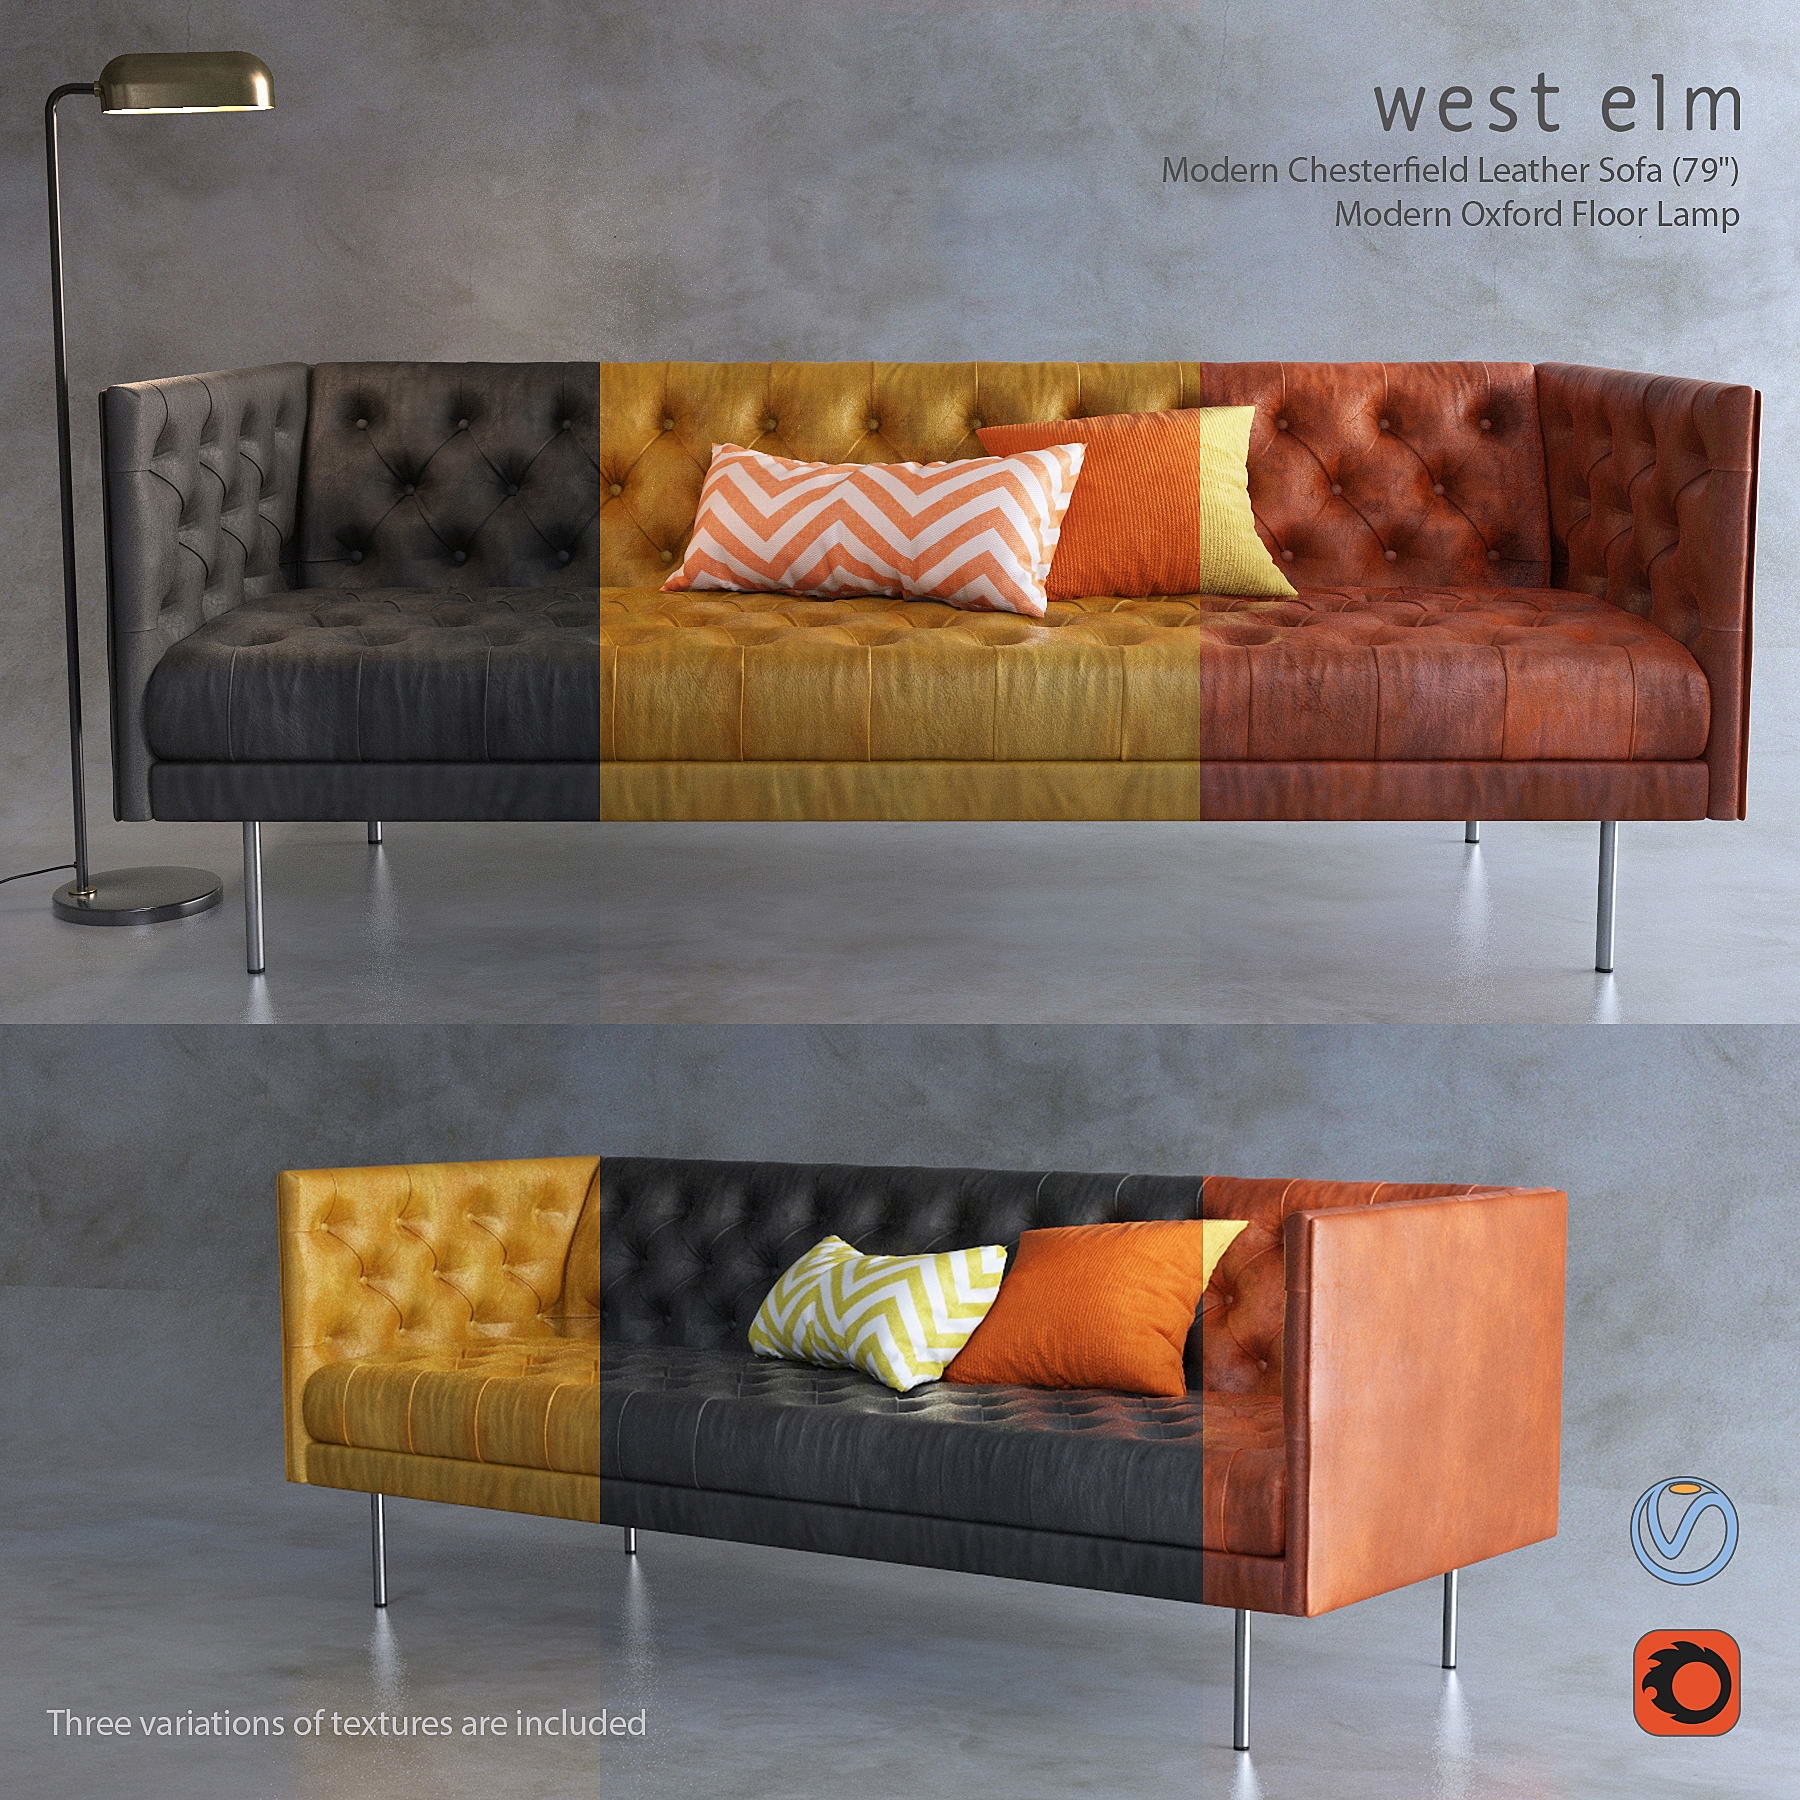 Fabulous West Elm Chesterfield Sofa And Oxford Flor Lamp 3D Model Gmtry Best Dining Table And Chair Ideas Images Gmtryco